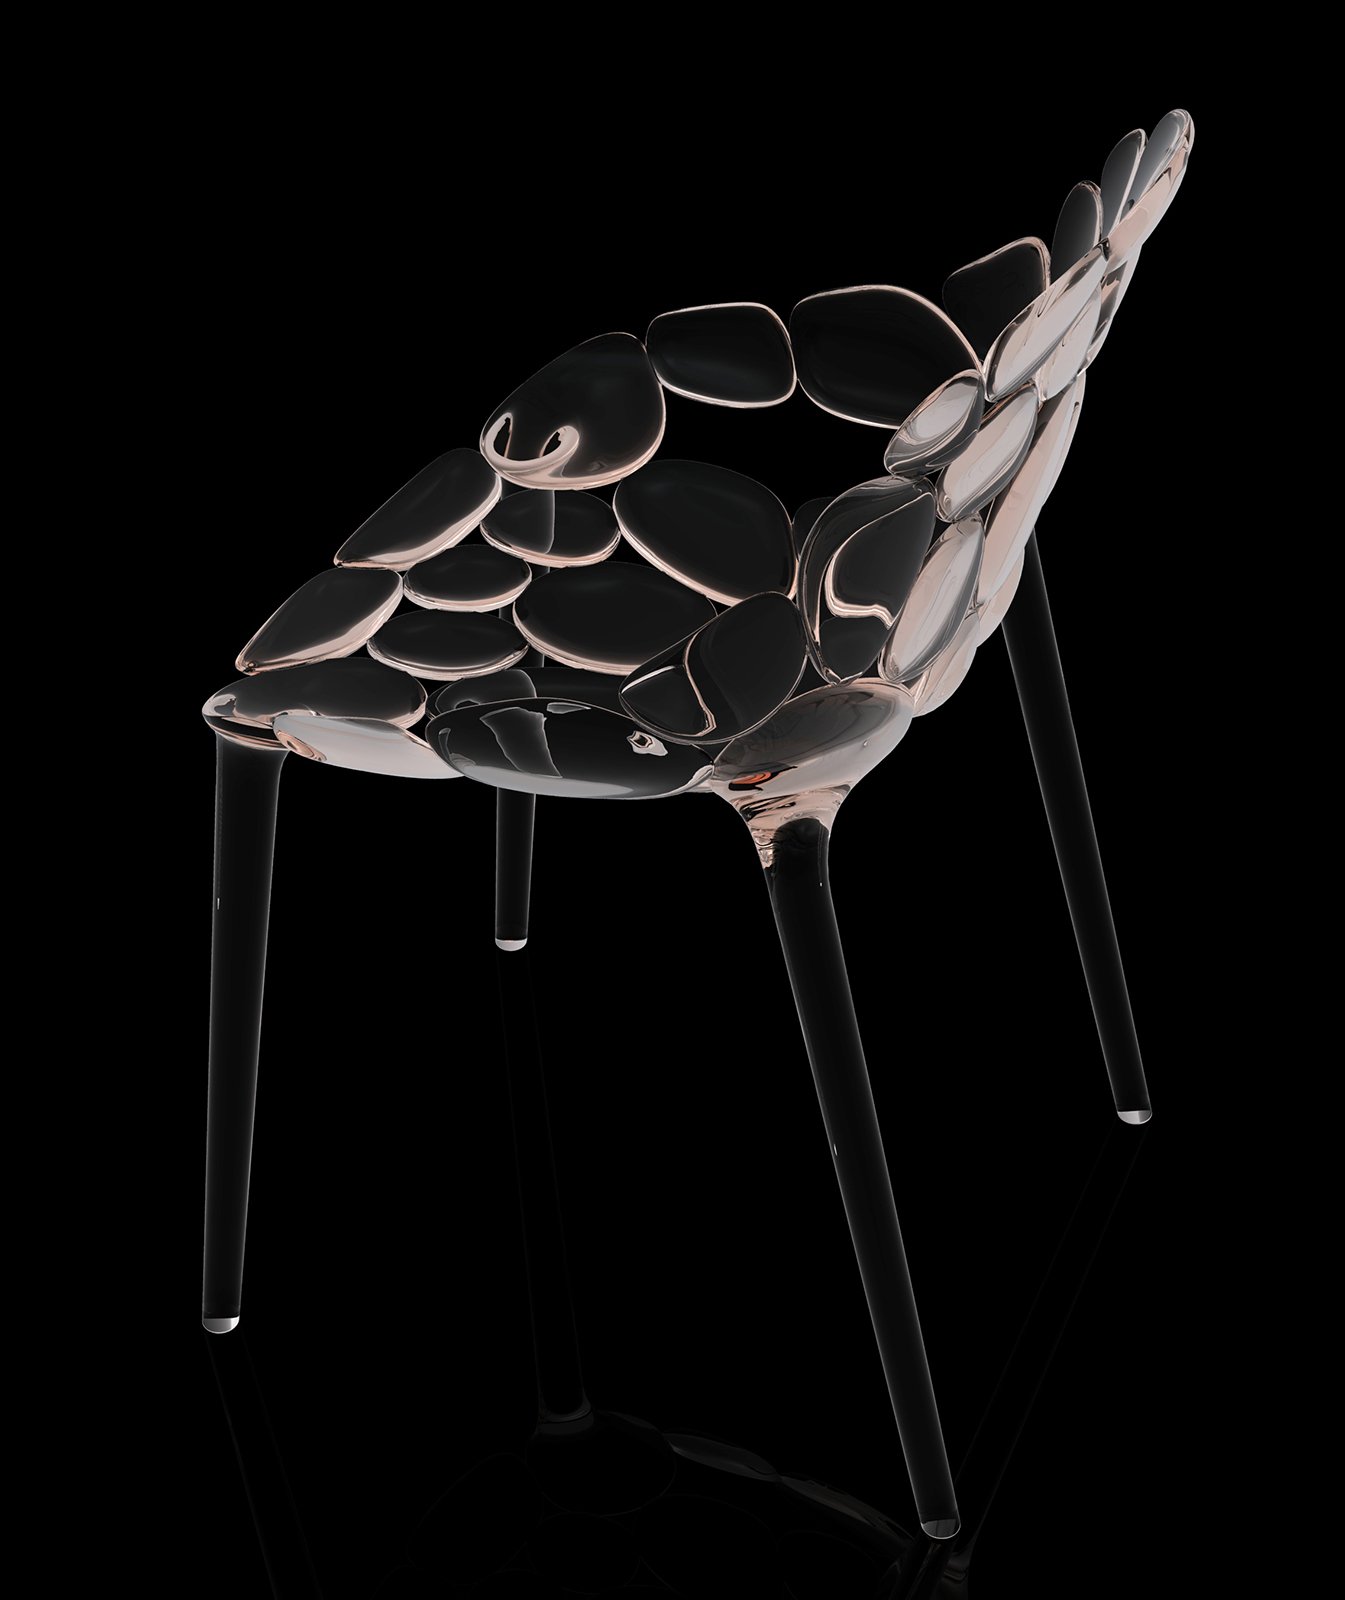 Claud-io chair by eugeni Quitllet with Kartell 4